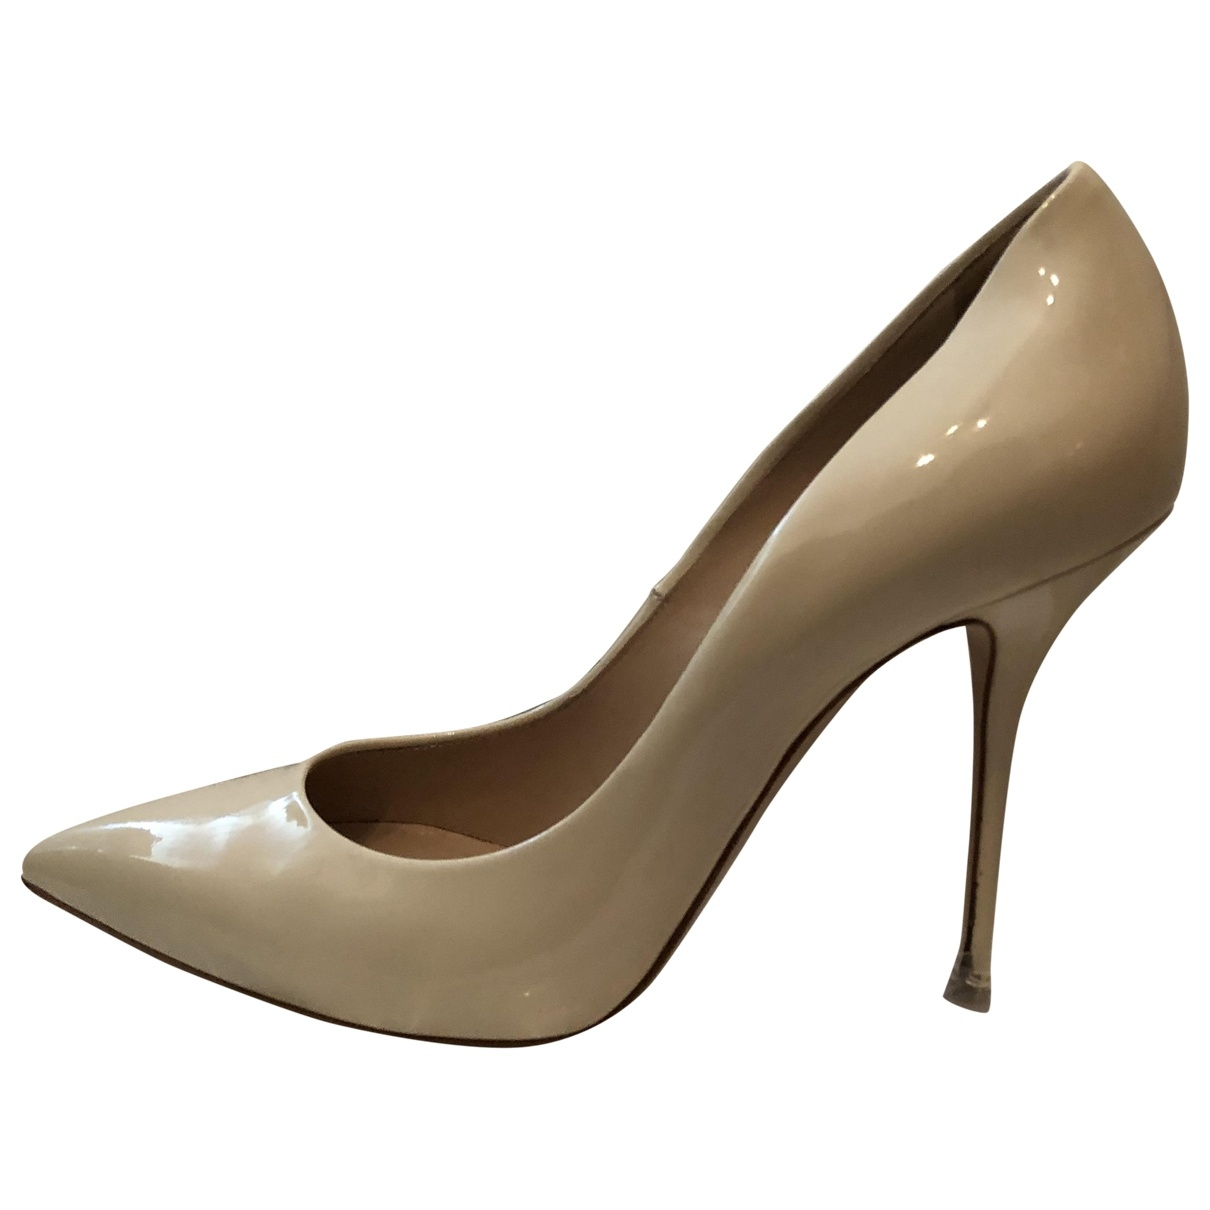 Casadei \N Beige Patent leather Heels for Women 38 EU